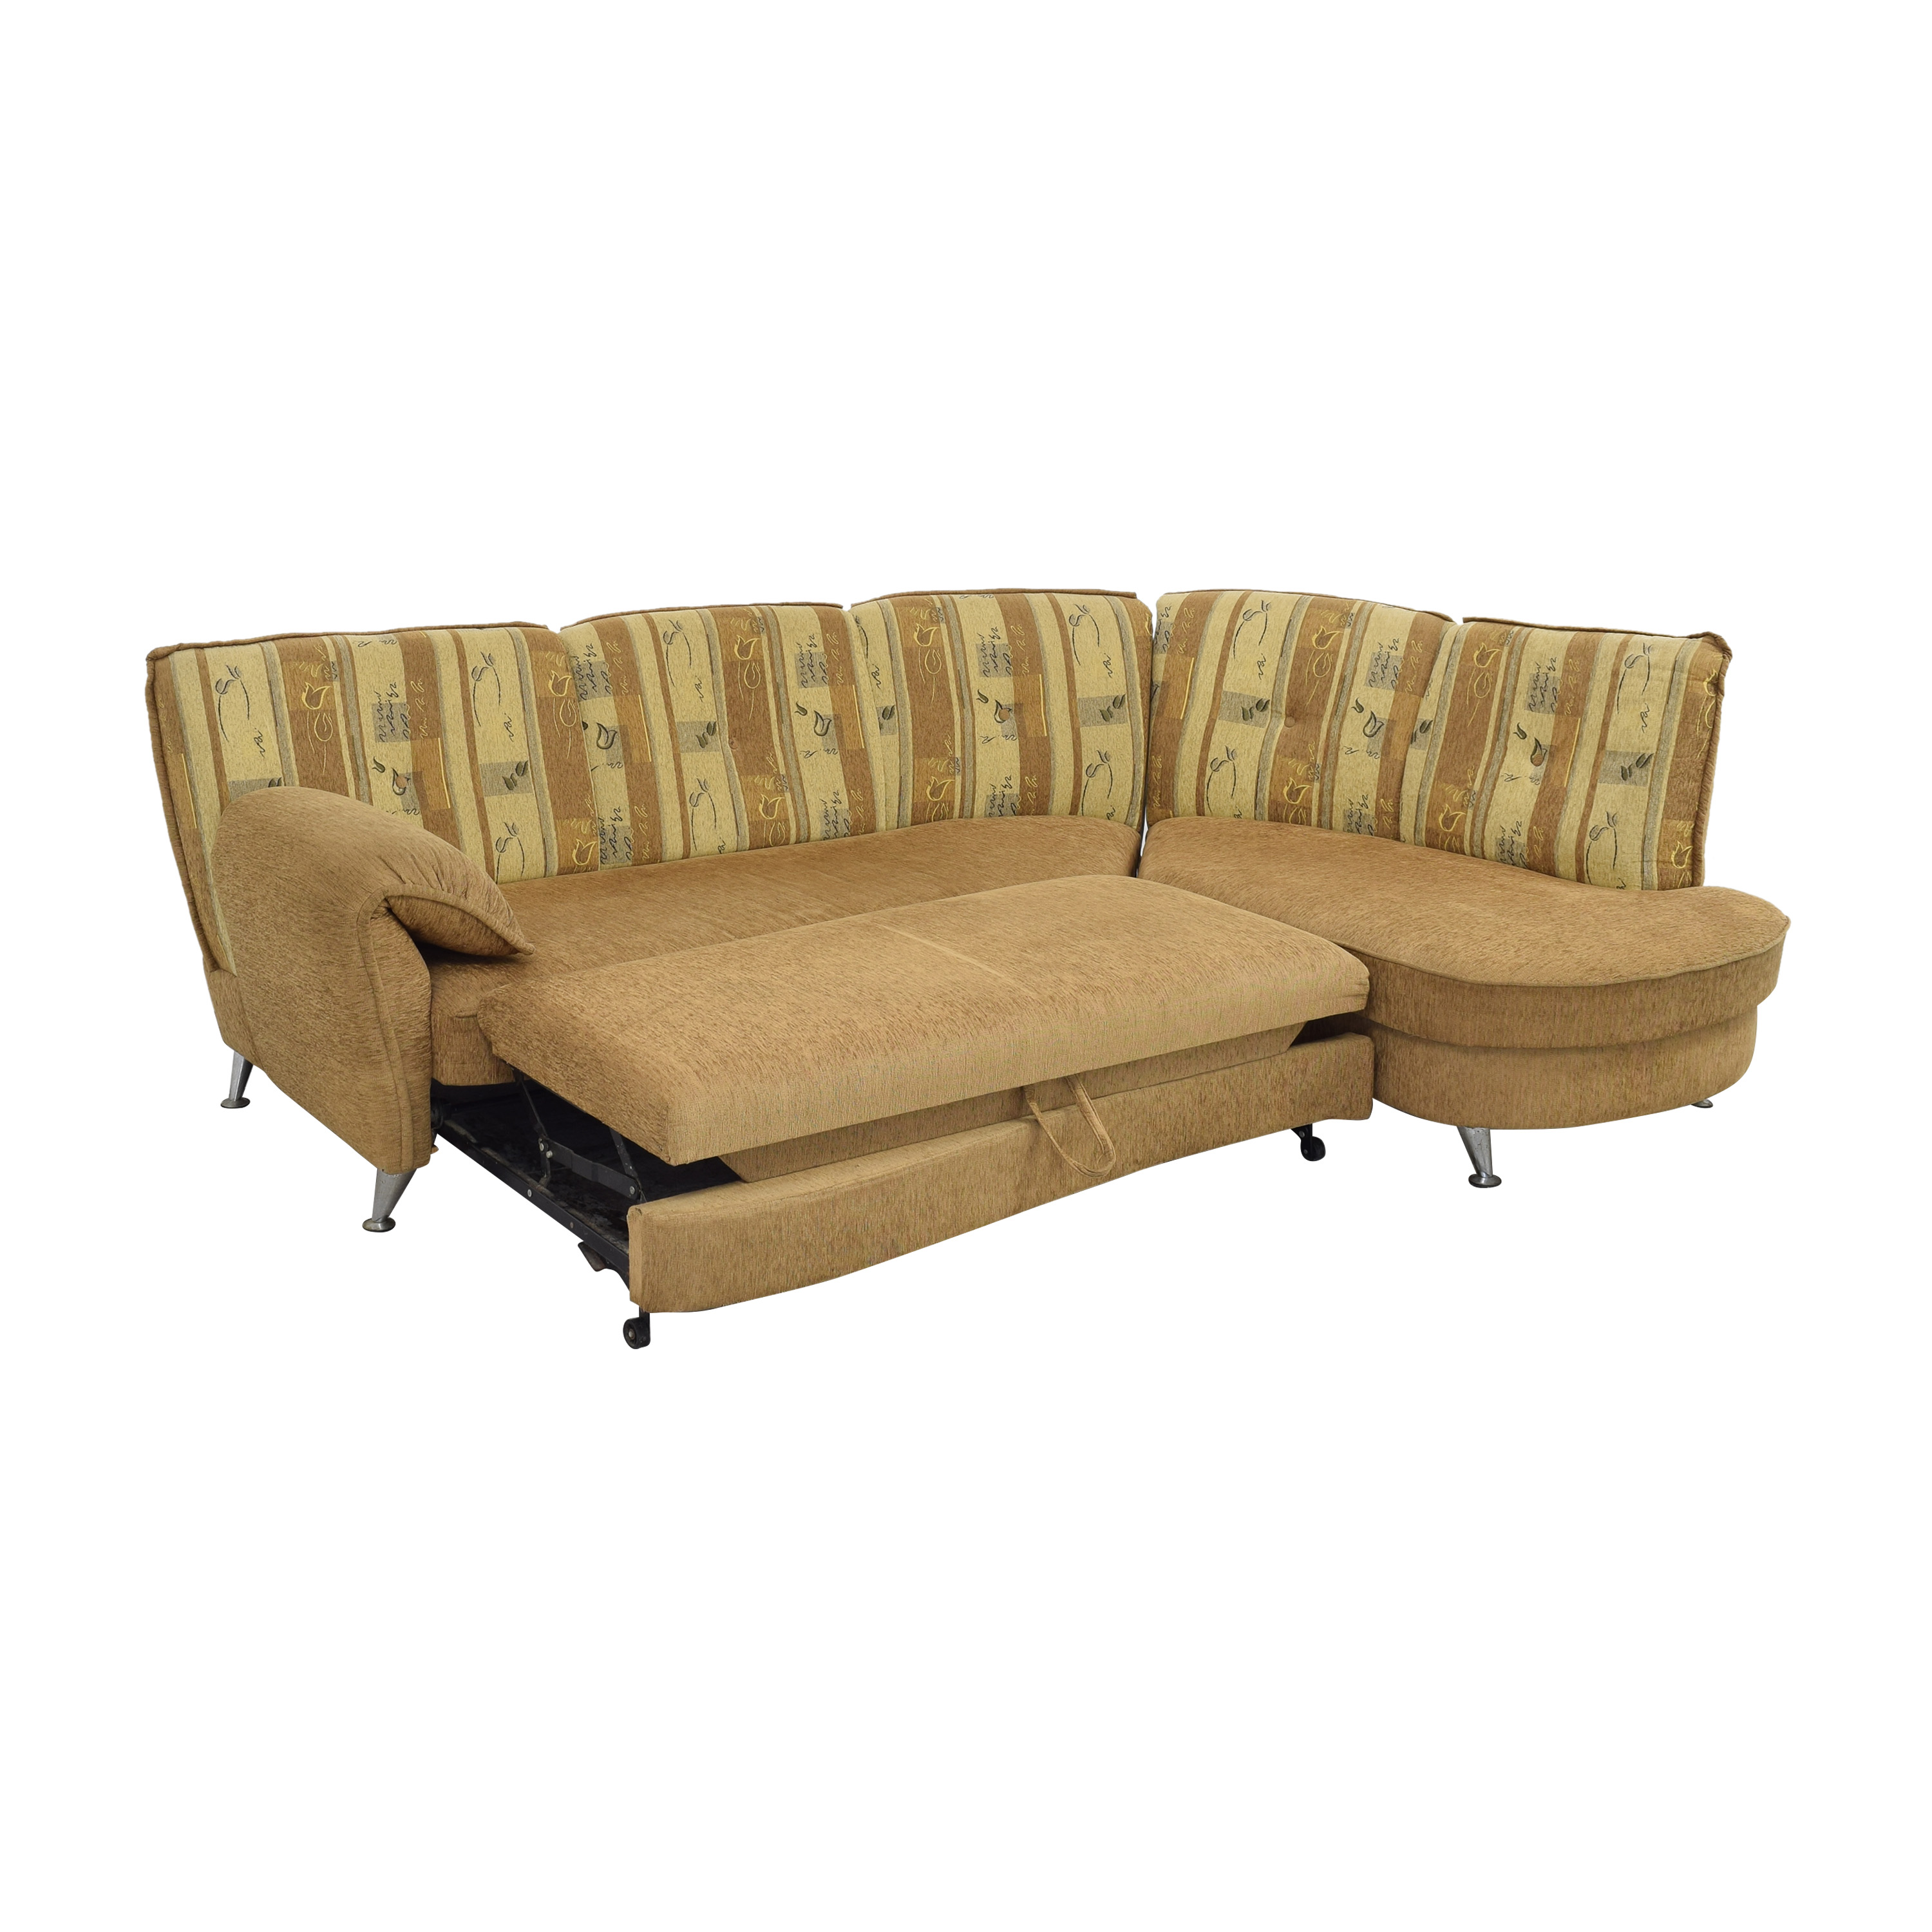 Curved Sectional Sofa with Foldout Bed ct